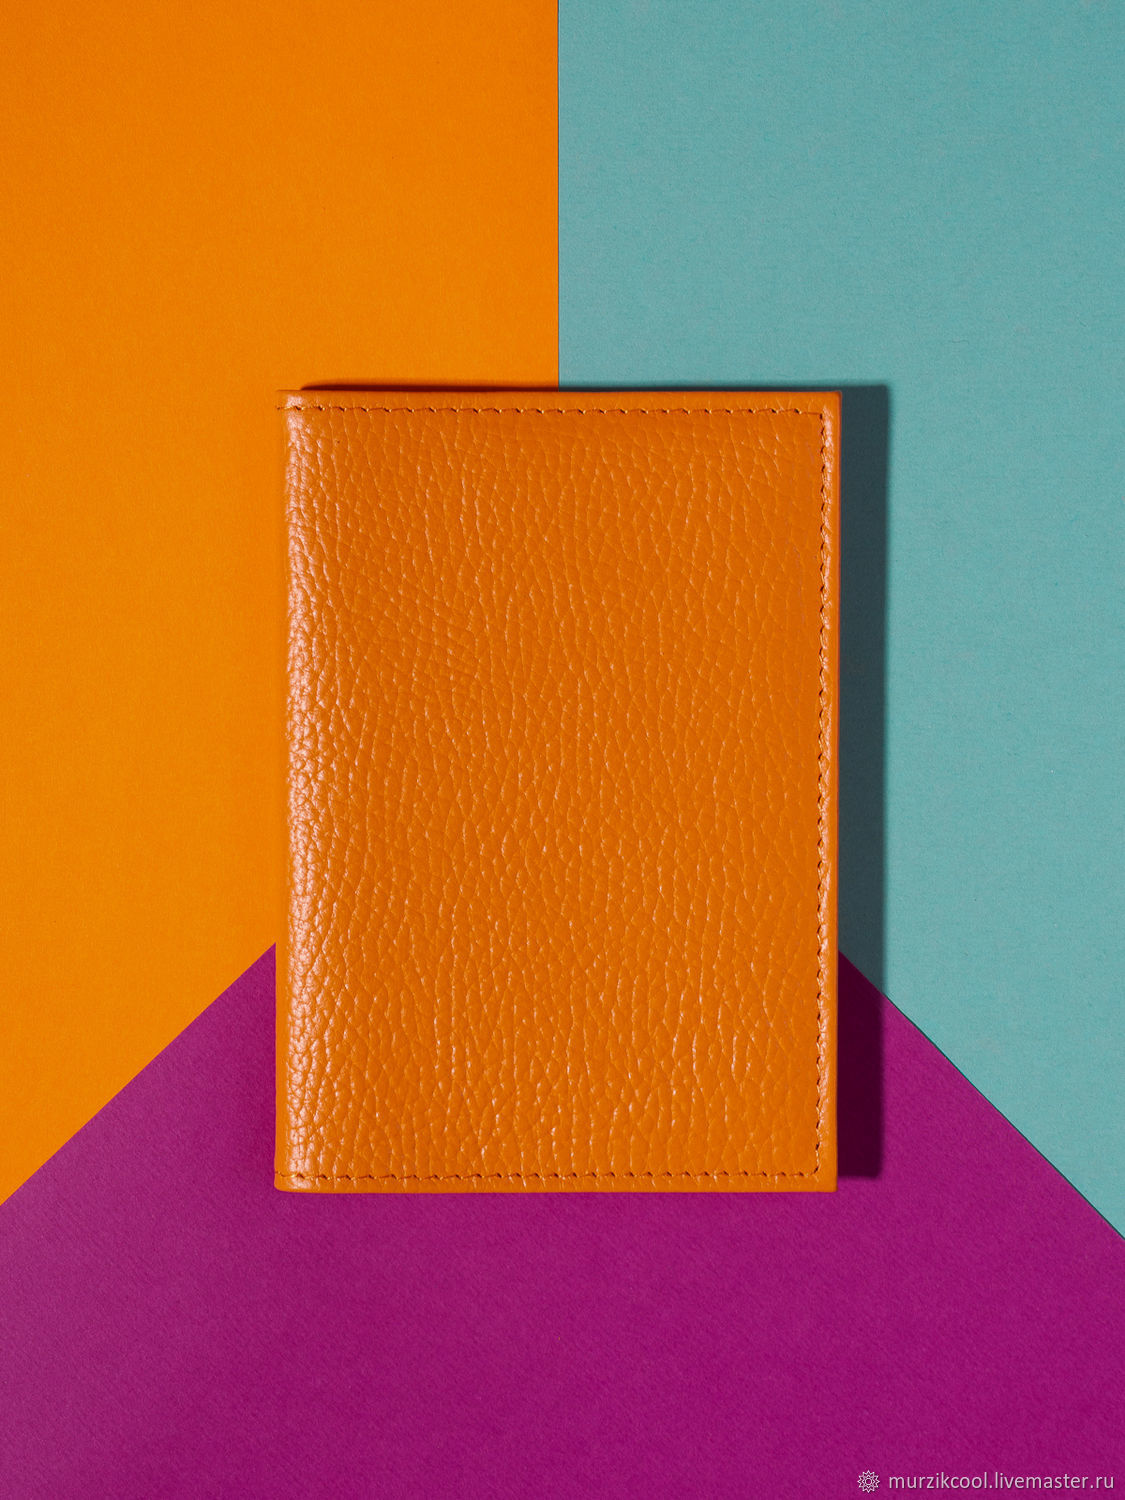 Passport cover 'Classic' Orange, Cover, Moscow,  Фото №1